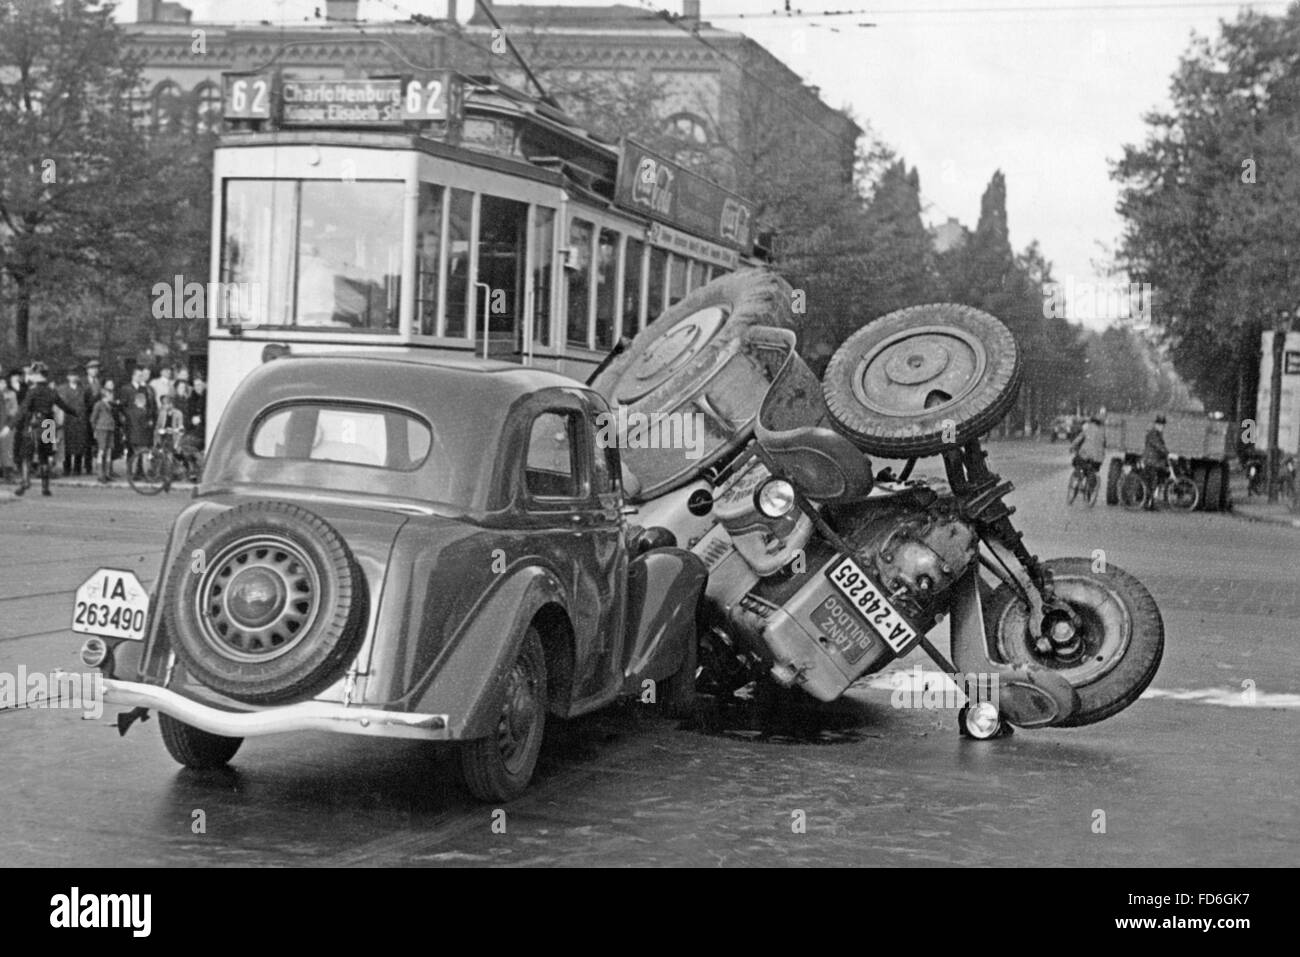 Road traffic accidents until 1945 - Stock Image